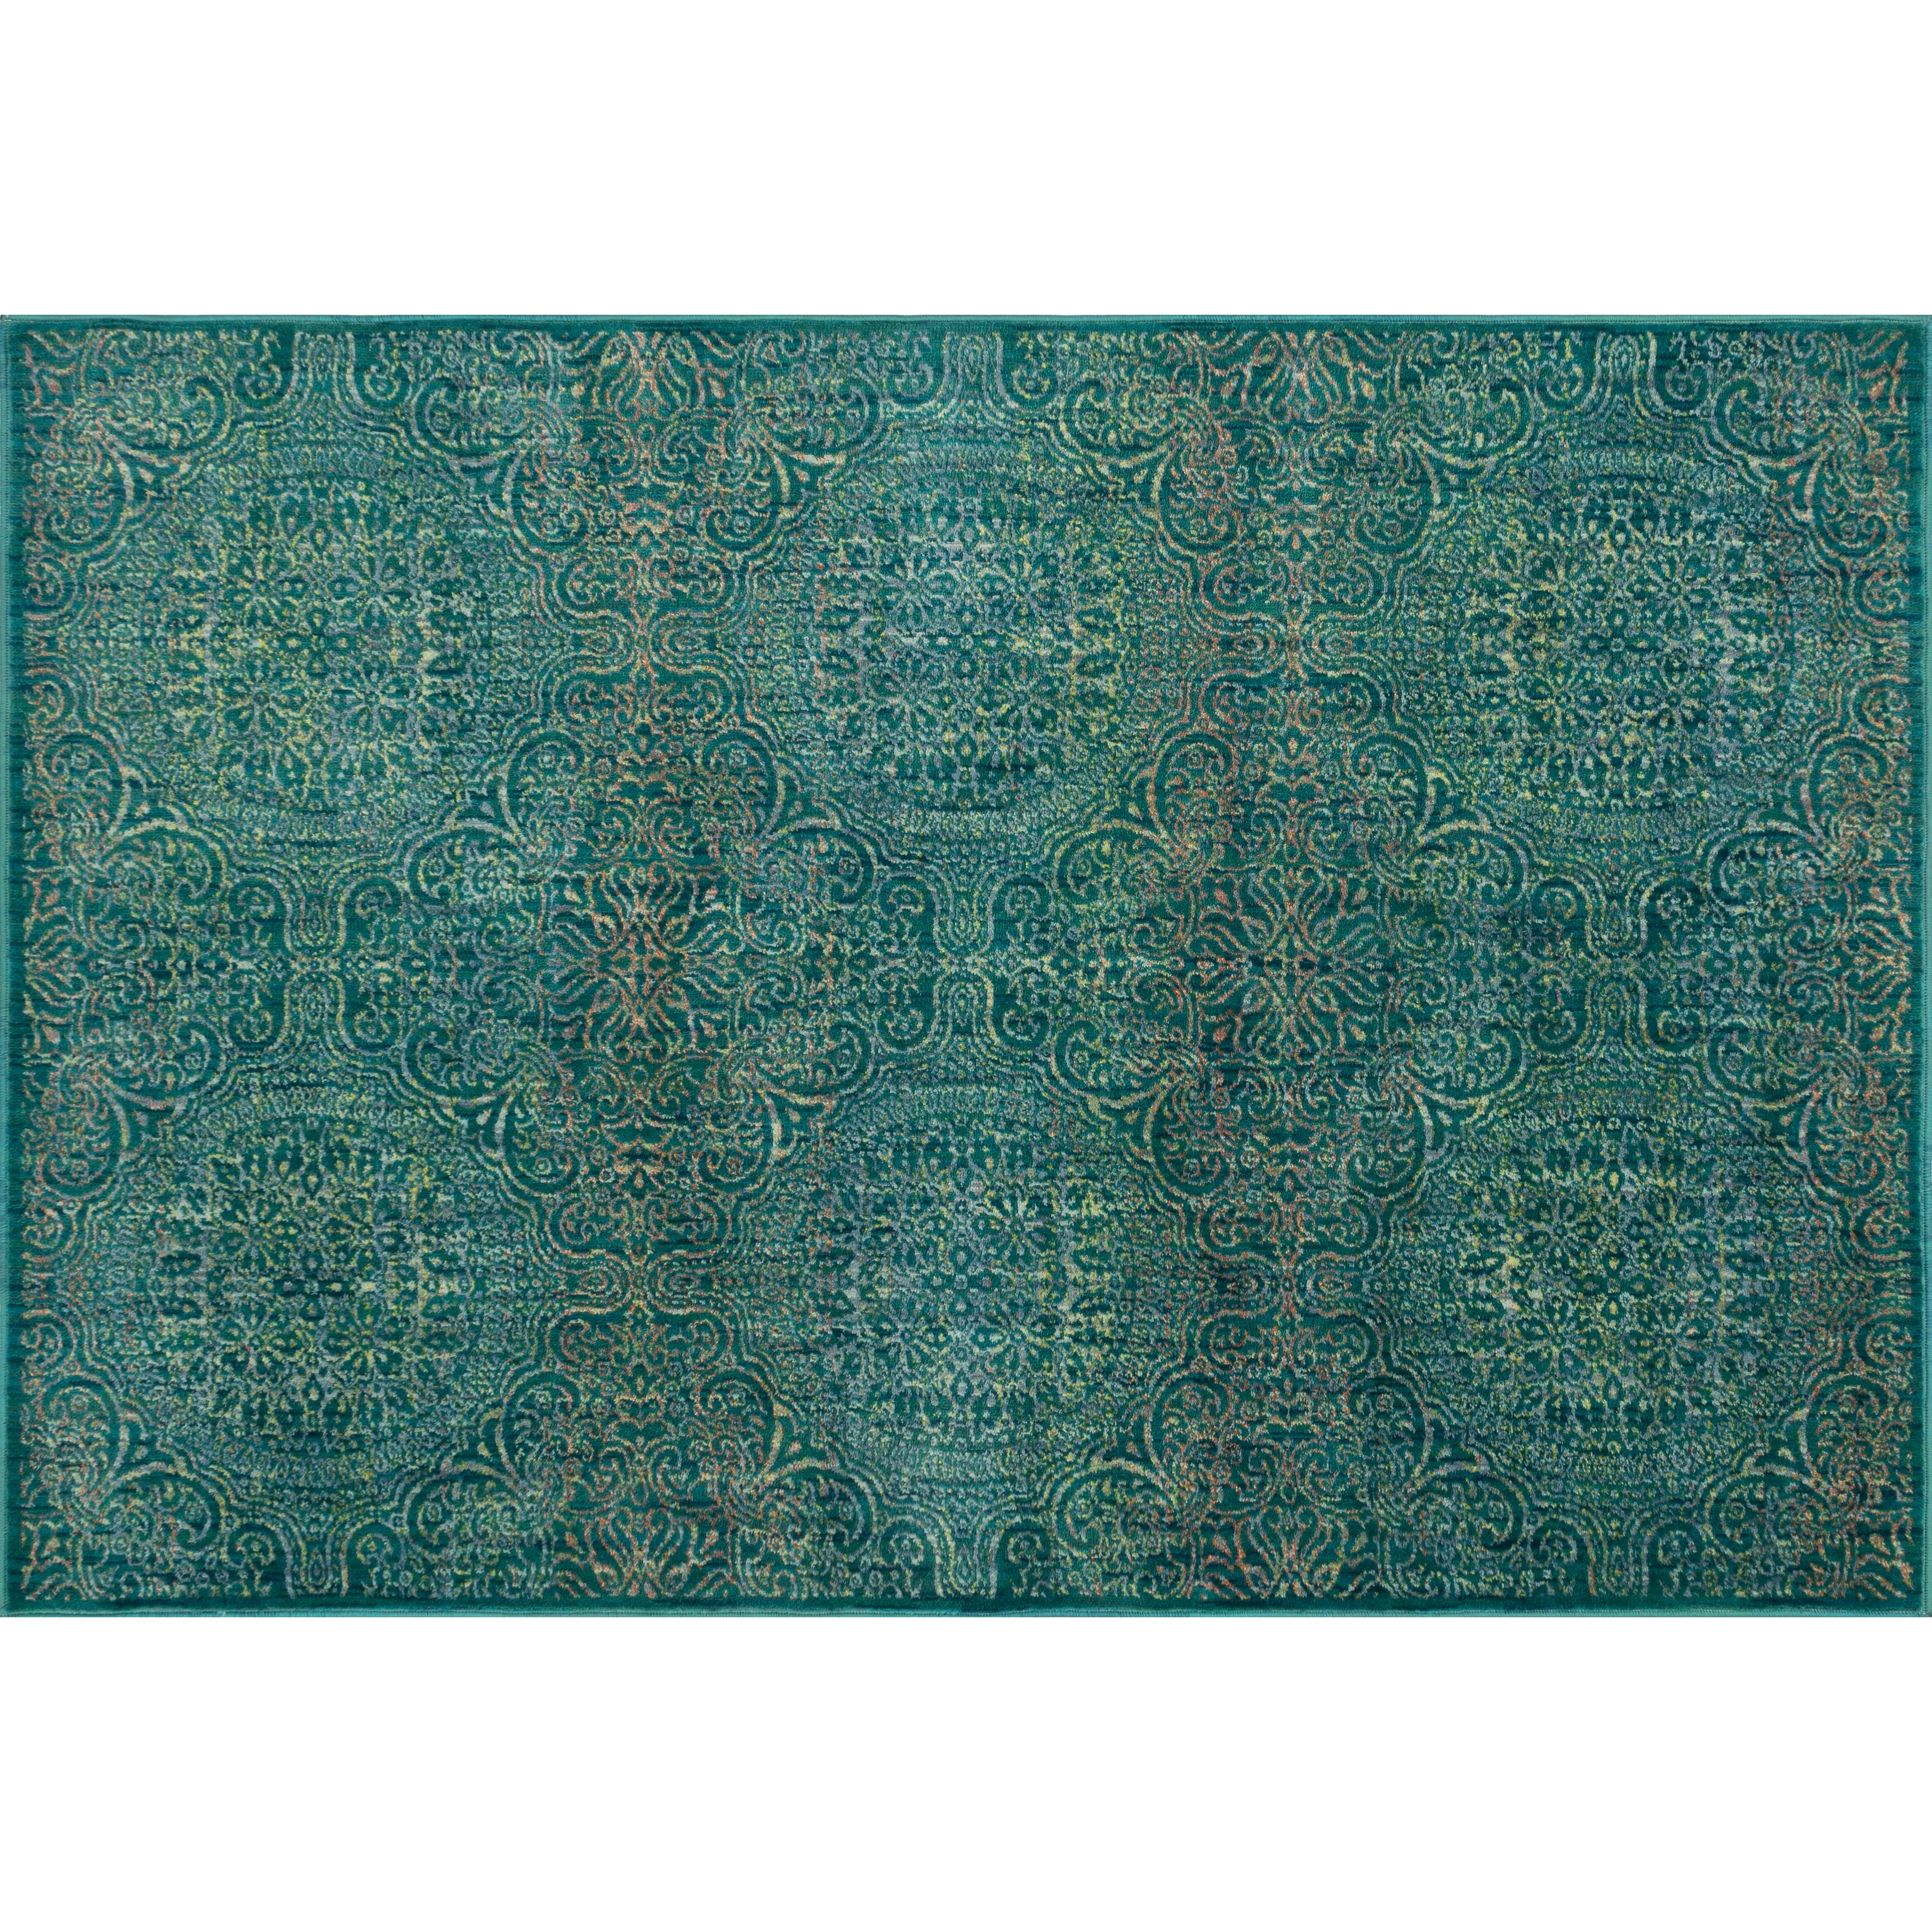 Loloi Rugs Madeline Teal/Multi Rug & Reviews